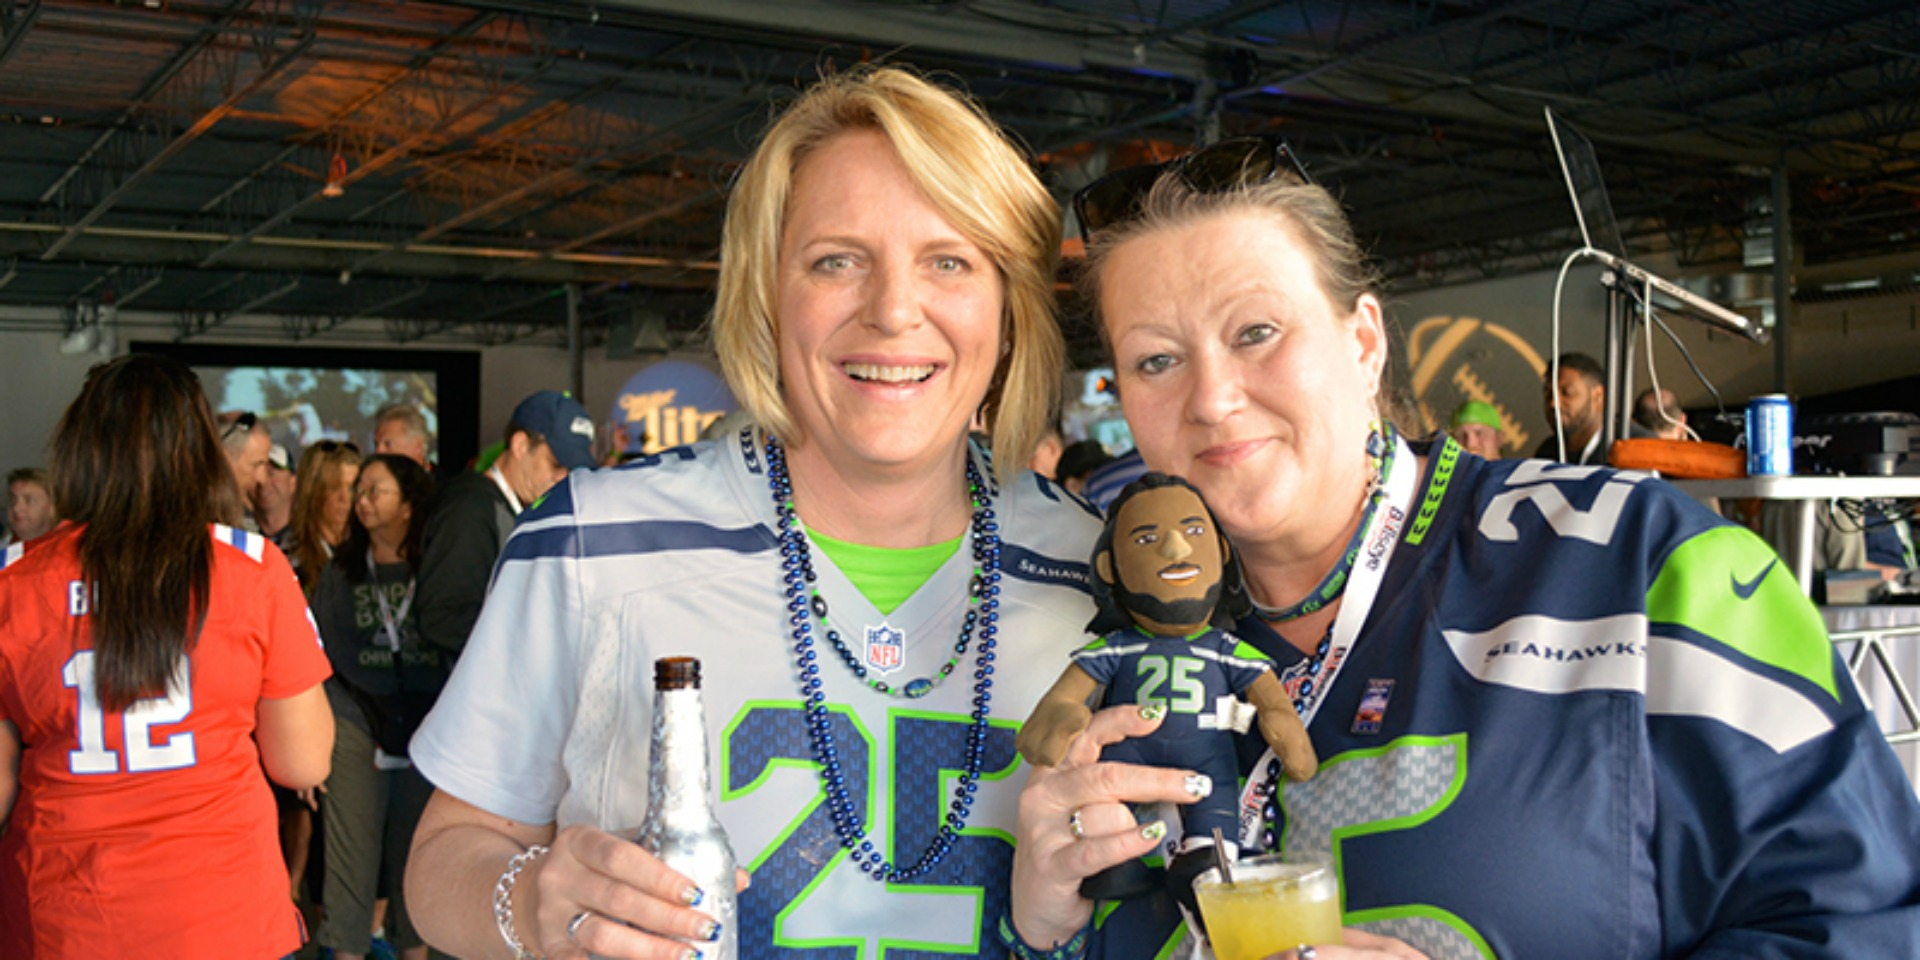 Seahawks fans at the 2015 Players Super Bowl Tailgate